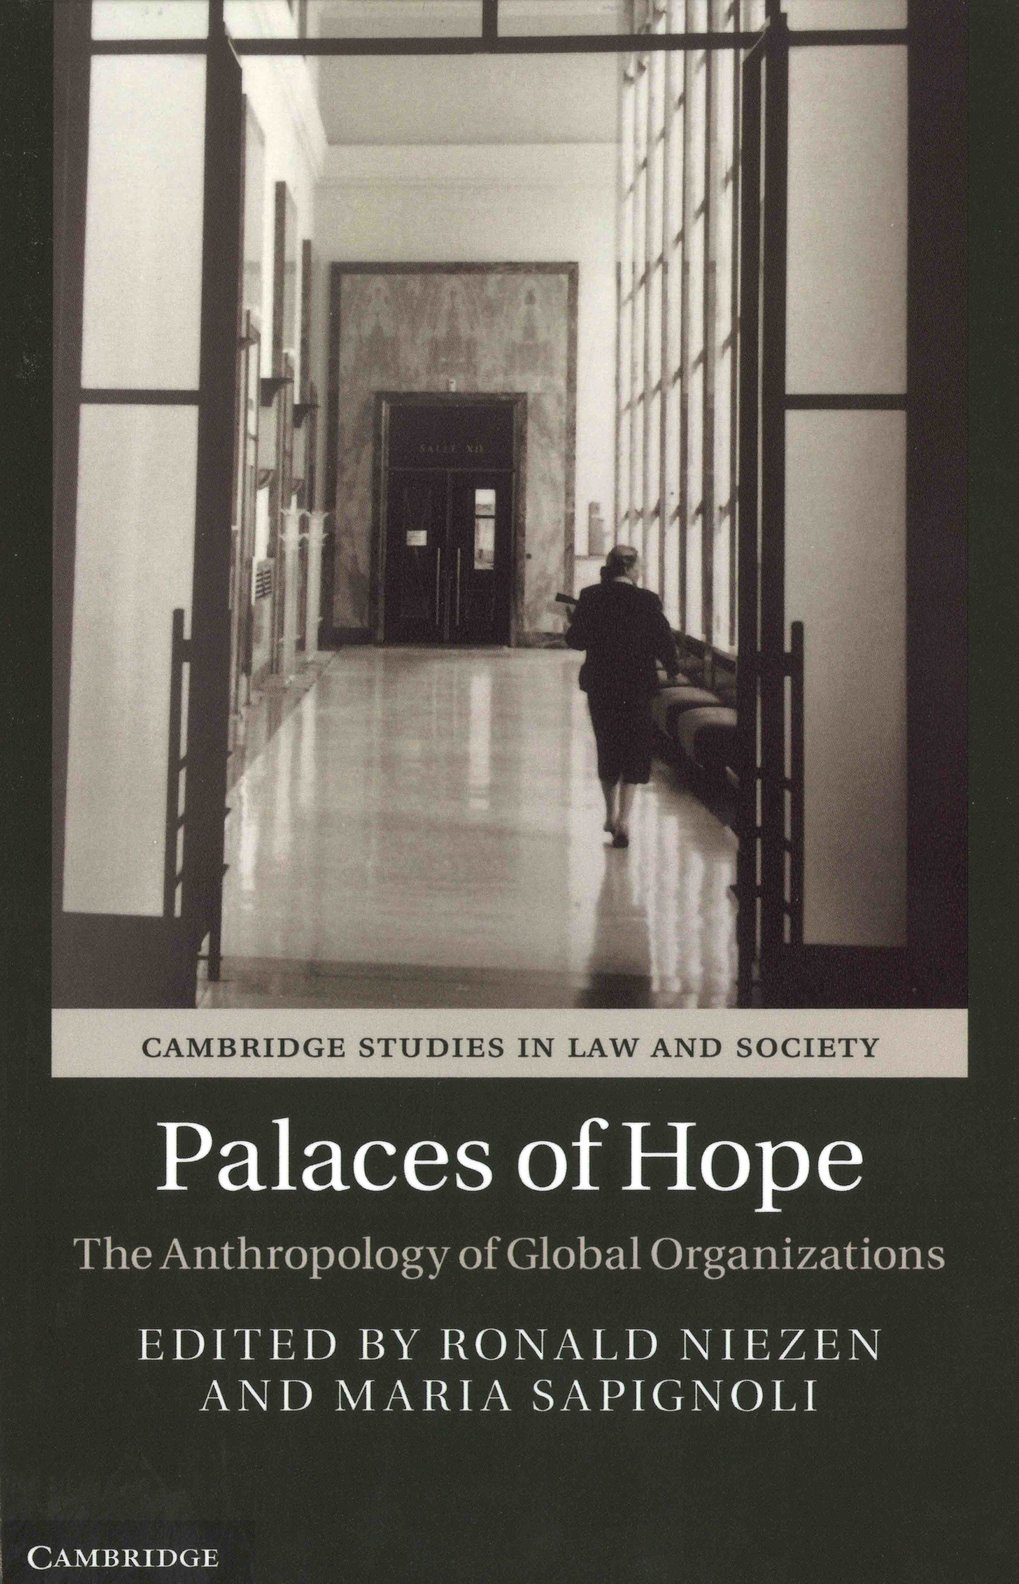 Palaces of Hope. The anthropology of global organizations